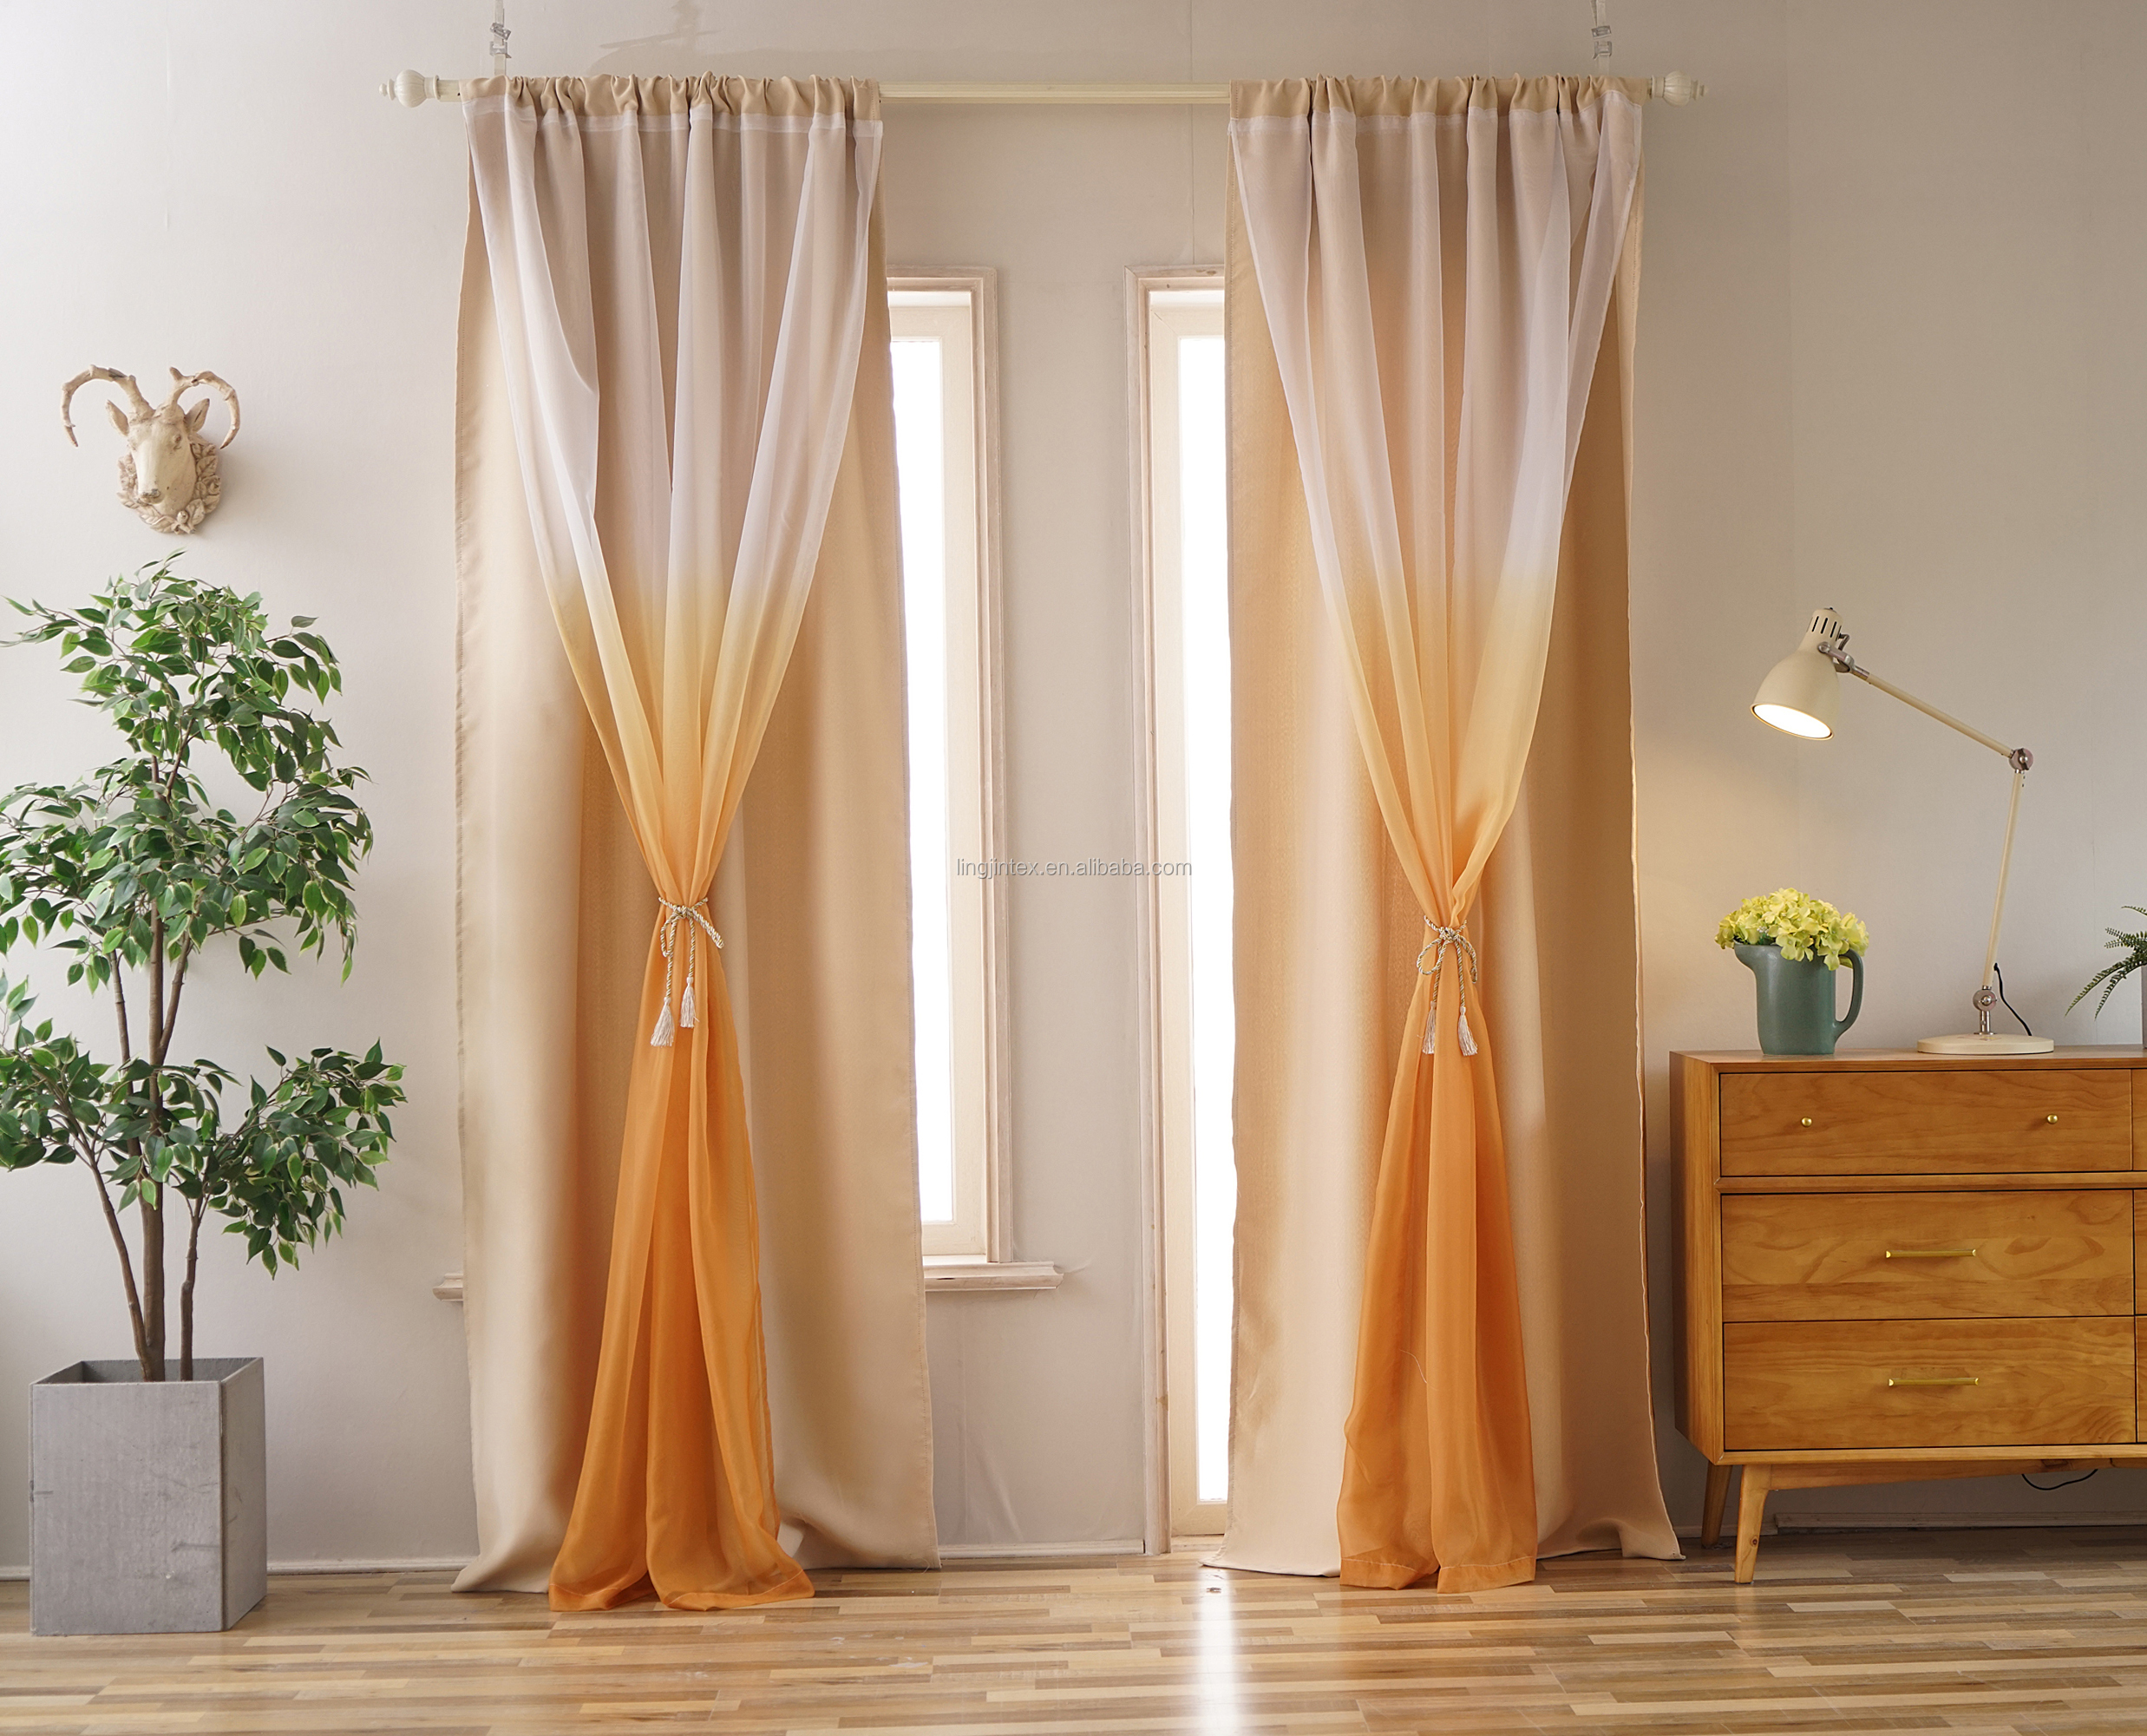 New design blackout curtains for bed room ready made arabic curtain